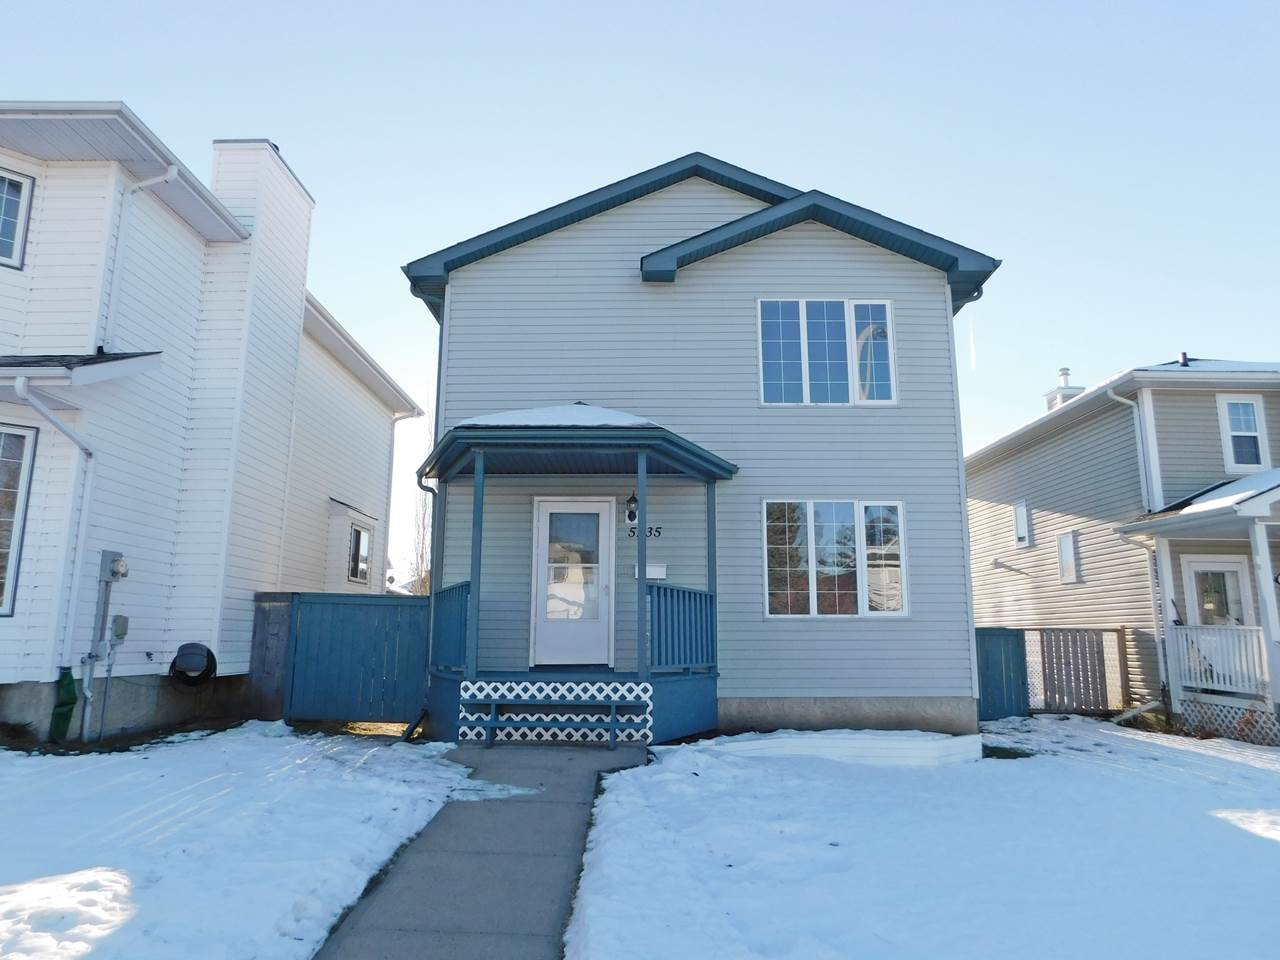 Main Photo: 5235 49 Avenue: Gibbons House for sale : MLS® # E4090454